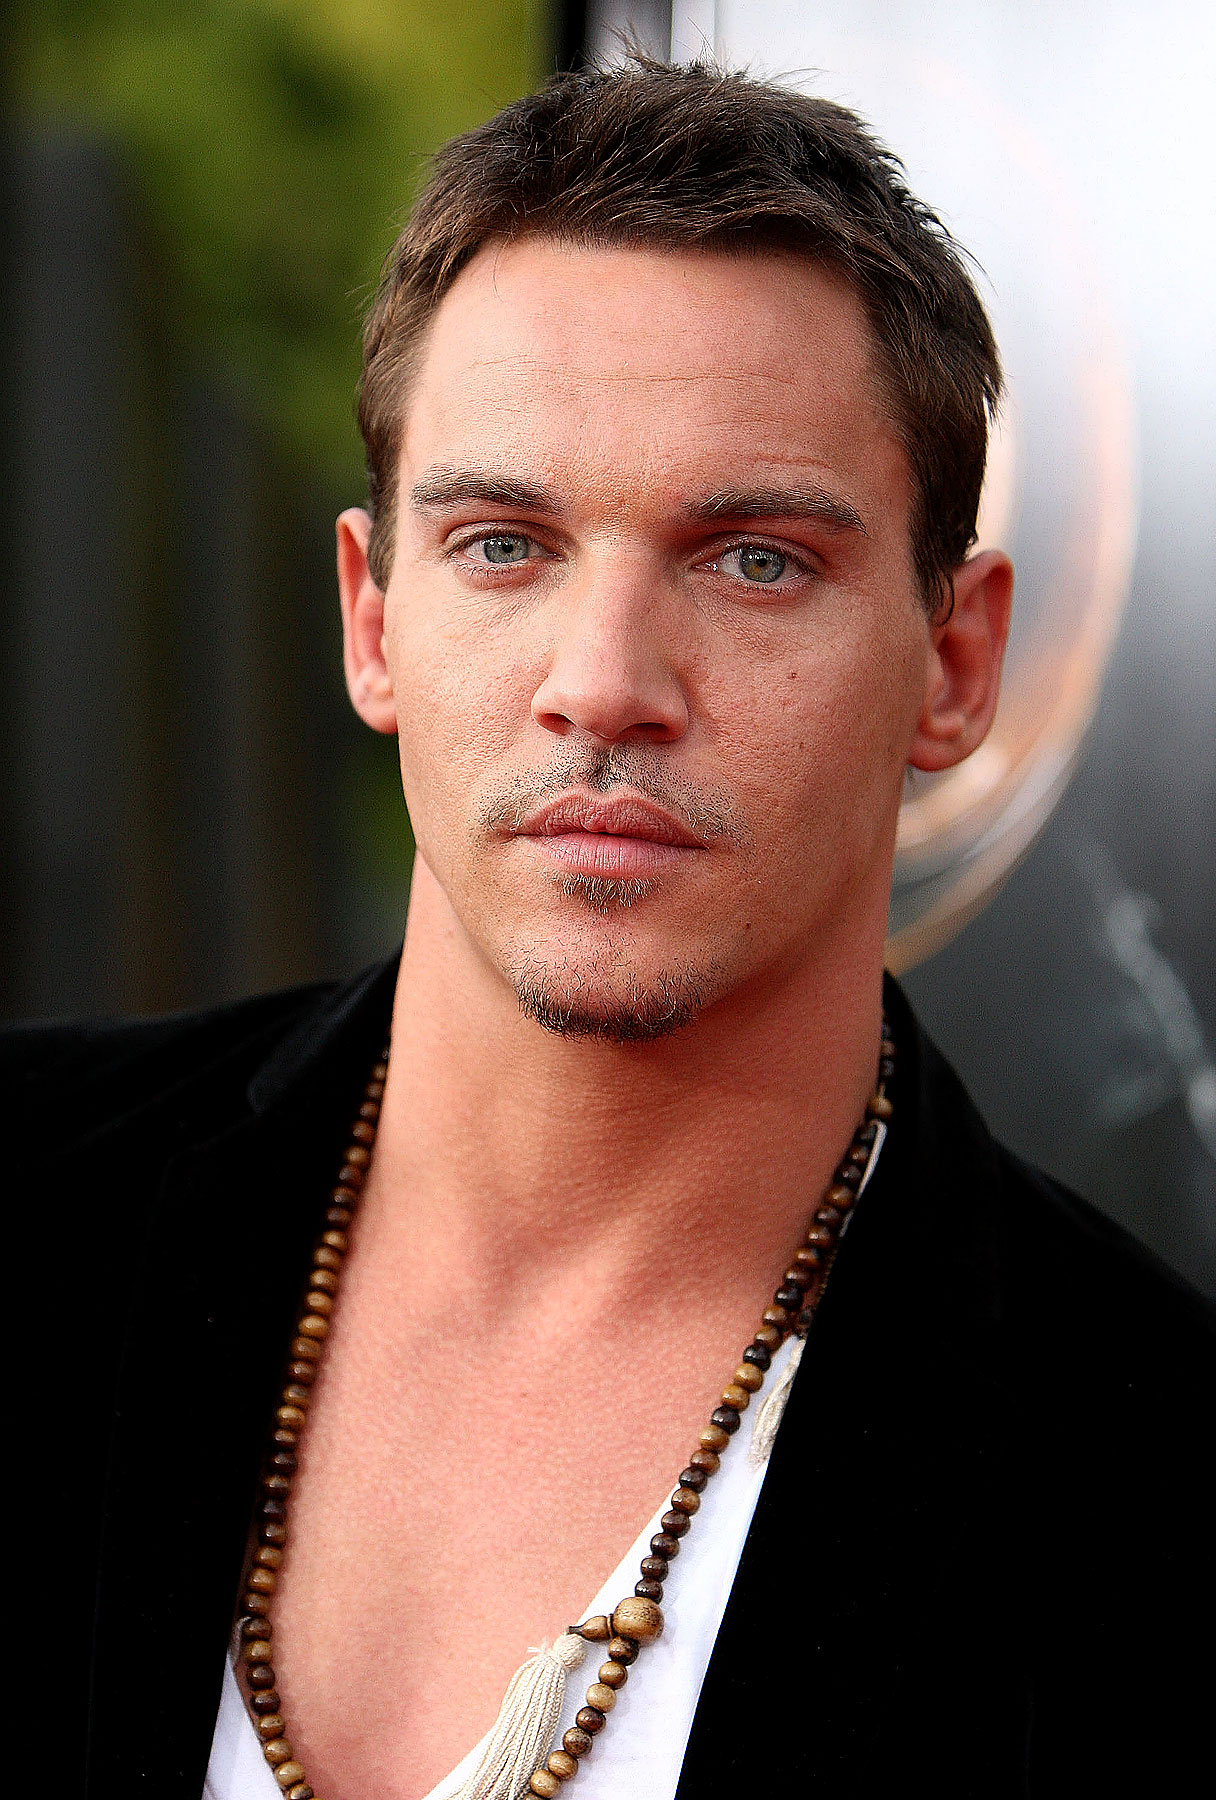 Jonathan Rhys Meyers Detained After Airport Brawl-photo